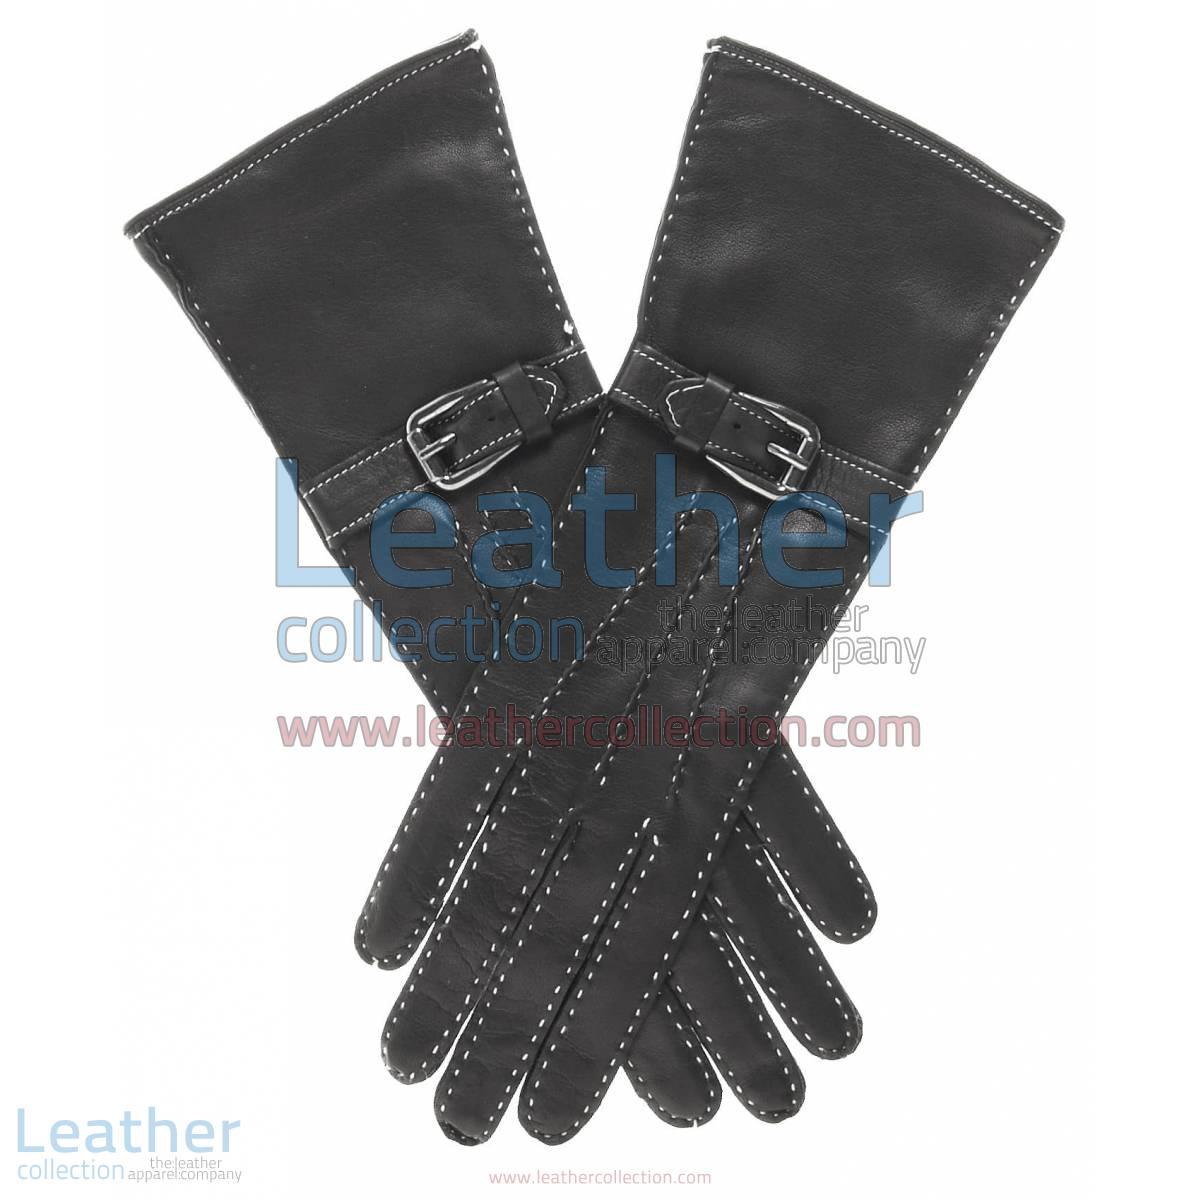 Silk Lined Leather Gloves with Decorative Buckle | silk lined leather gloves,leather gloves